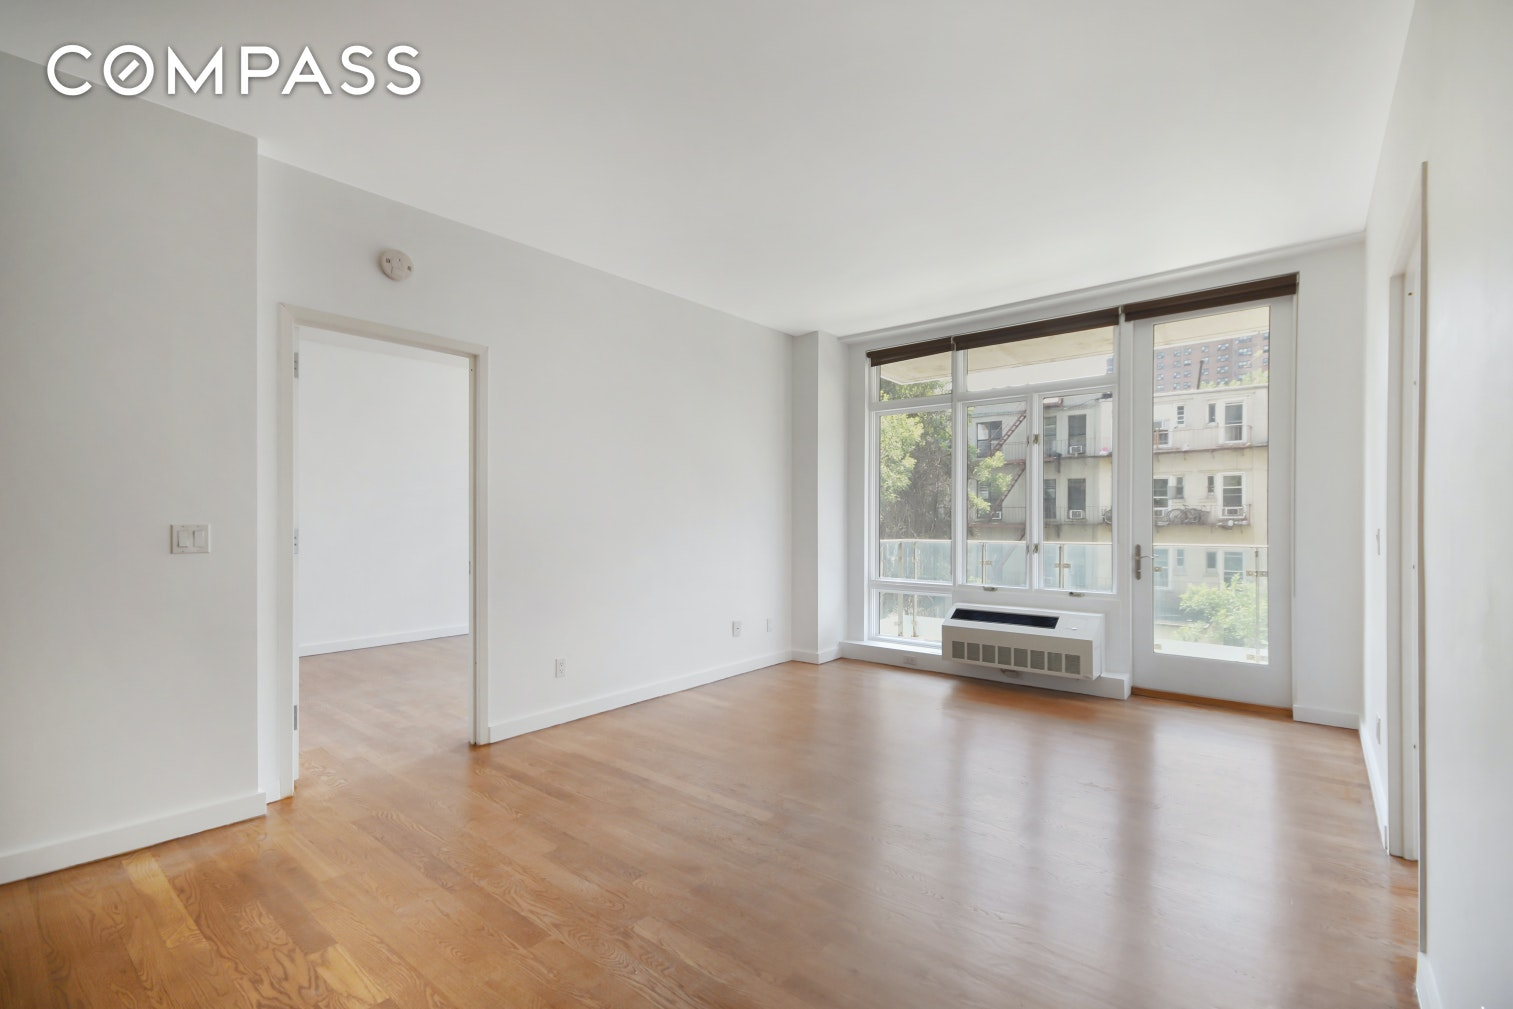 342 East 110th Street, Apt 3-E, Manhattan, New York 10029